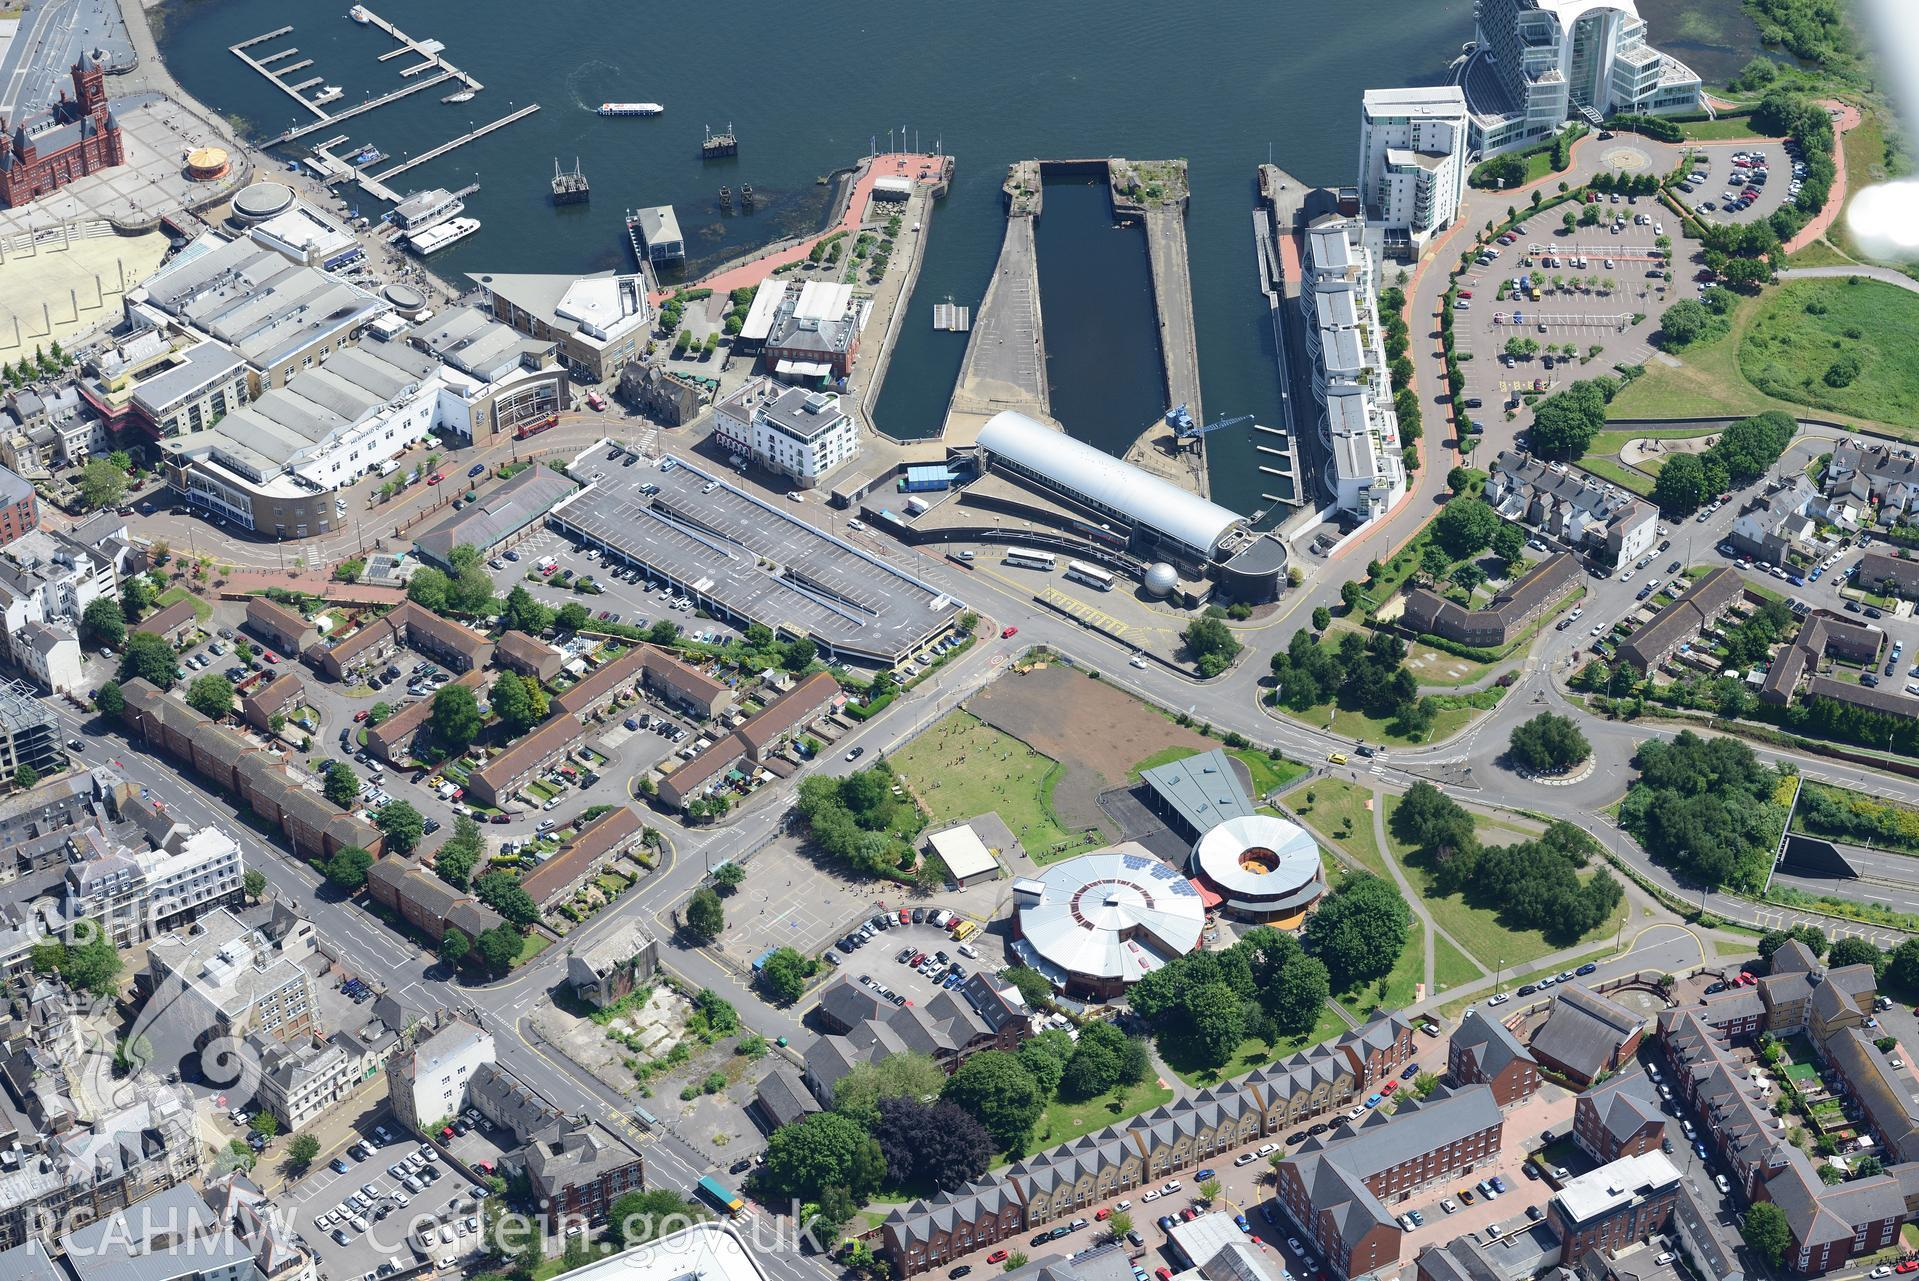 Mountstuart Primary School, Techniquest and St. David's Hotel, Butetown, Cardiff Bay. Oblique aerial photograph taken during the Royal Commission's programme of archaeological aerial reconnaissance by Toby Driver on 29th June 2015.